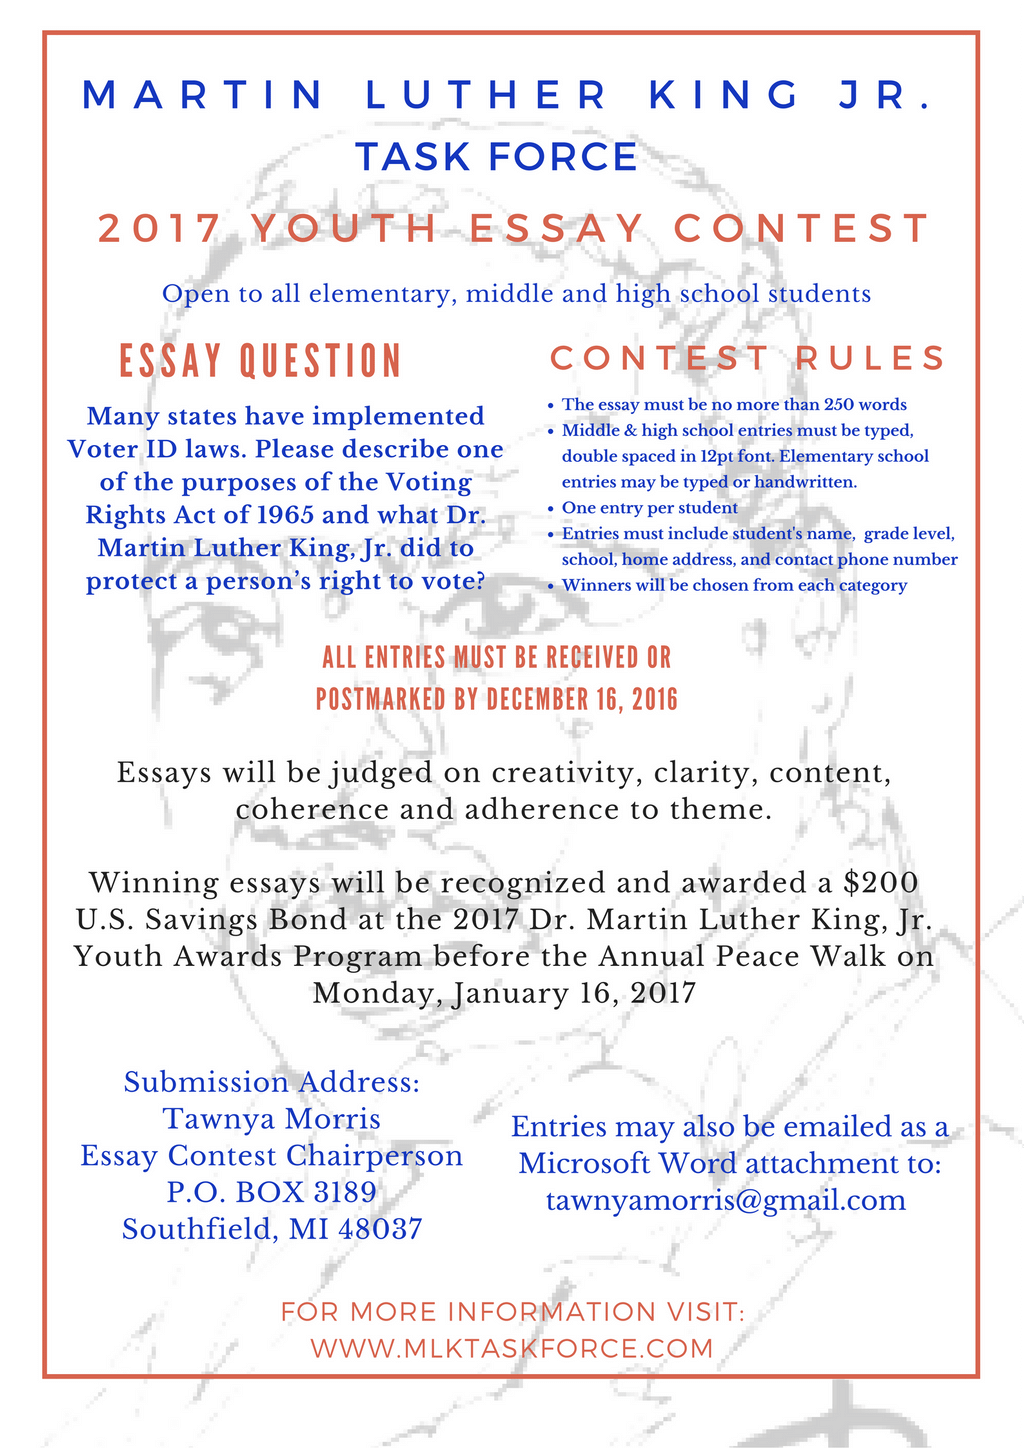 essay on martin luther dr martin luther king jr task force inc  dr martin luther king jr task force inc the flyer for our 2017 youth essay contest